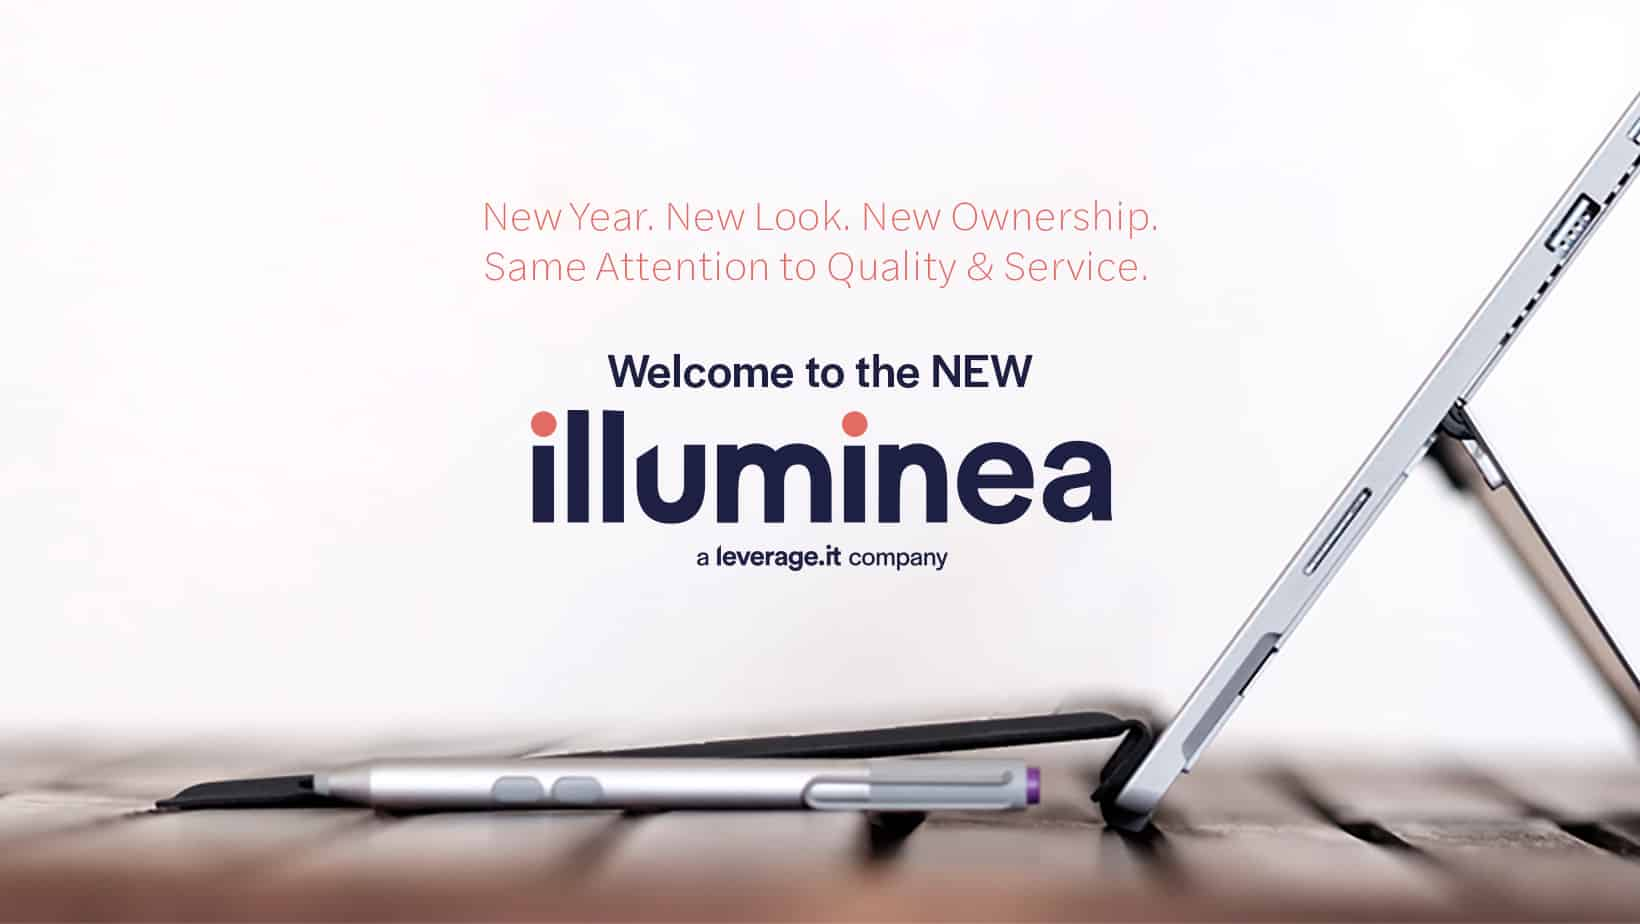 illuminea is acquired by LeverageIT